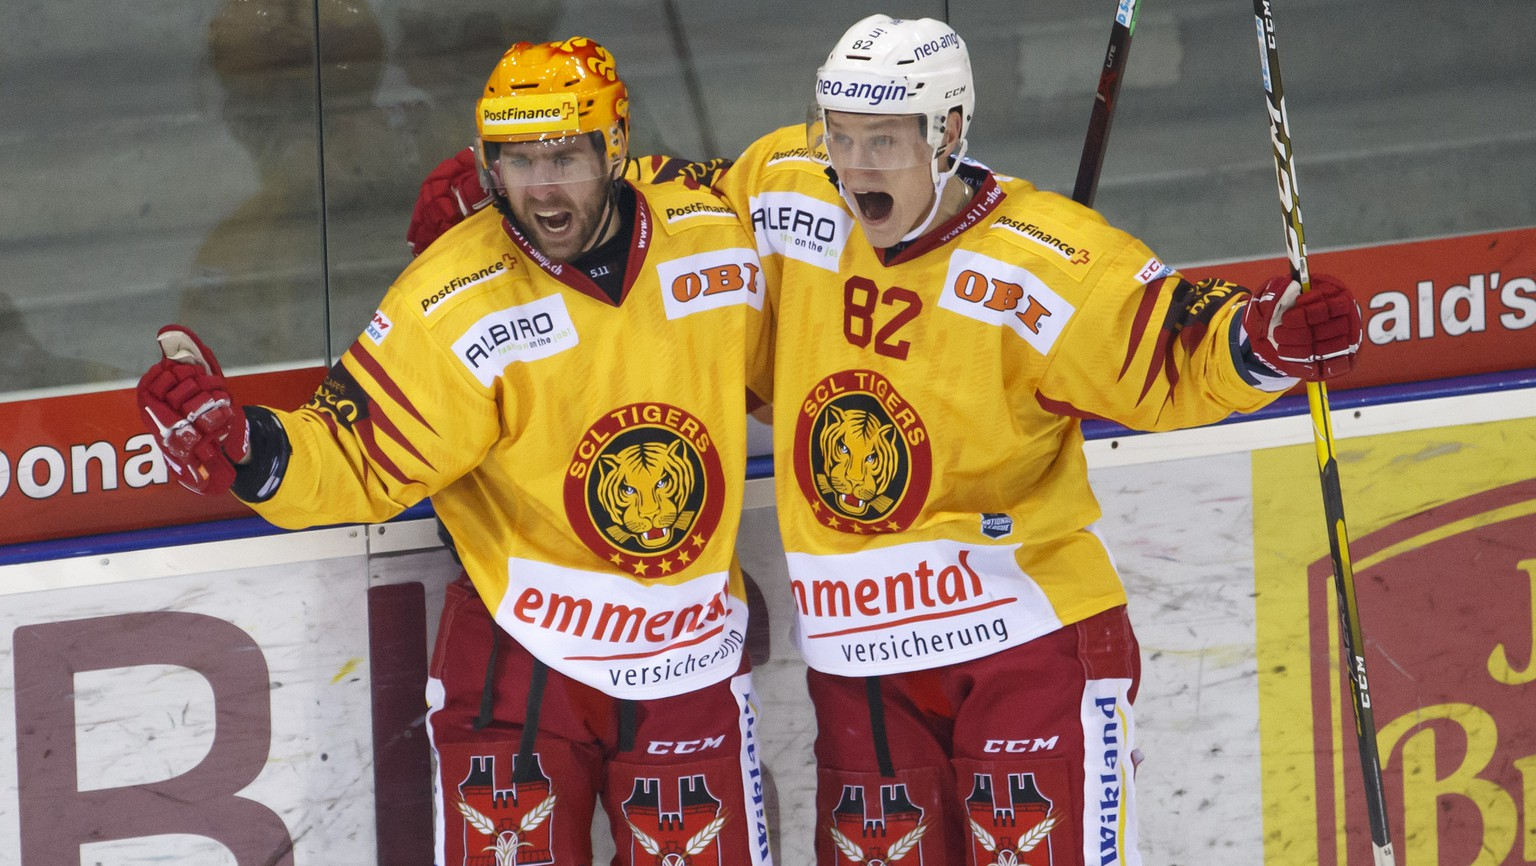 Tiger's forward Christopher DiDomenico, of Canada, left, celebrates his goal with teammates forward Harri Pesonen, of Finland, right, after scoring the 3:5, during a National League regular season game of the Swiss Championship between Geneve-Servette HC and SCL Tigers, at the ice stadium Les Vernets, in Geneva, Switzerland, Friday, February 8, 2019. (KEYSTONE/Salvatore Di Nolfi)